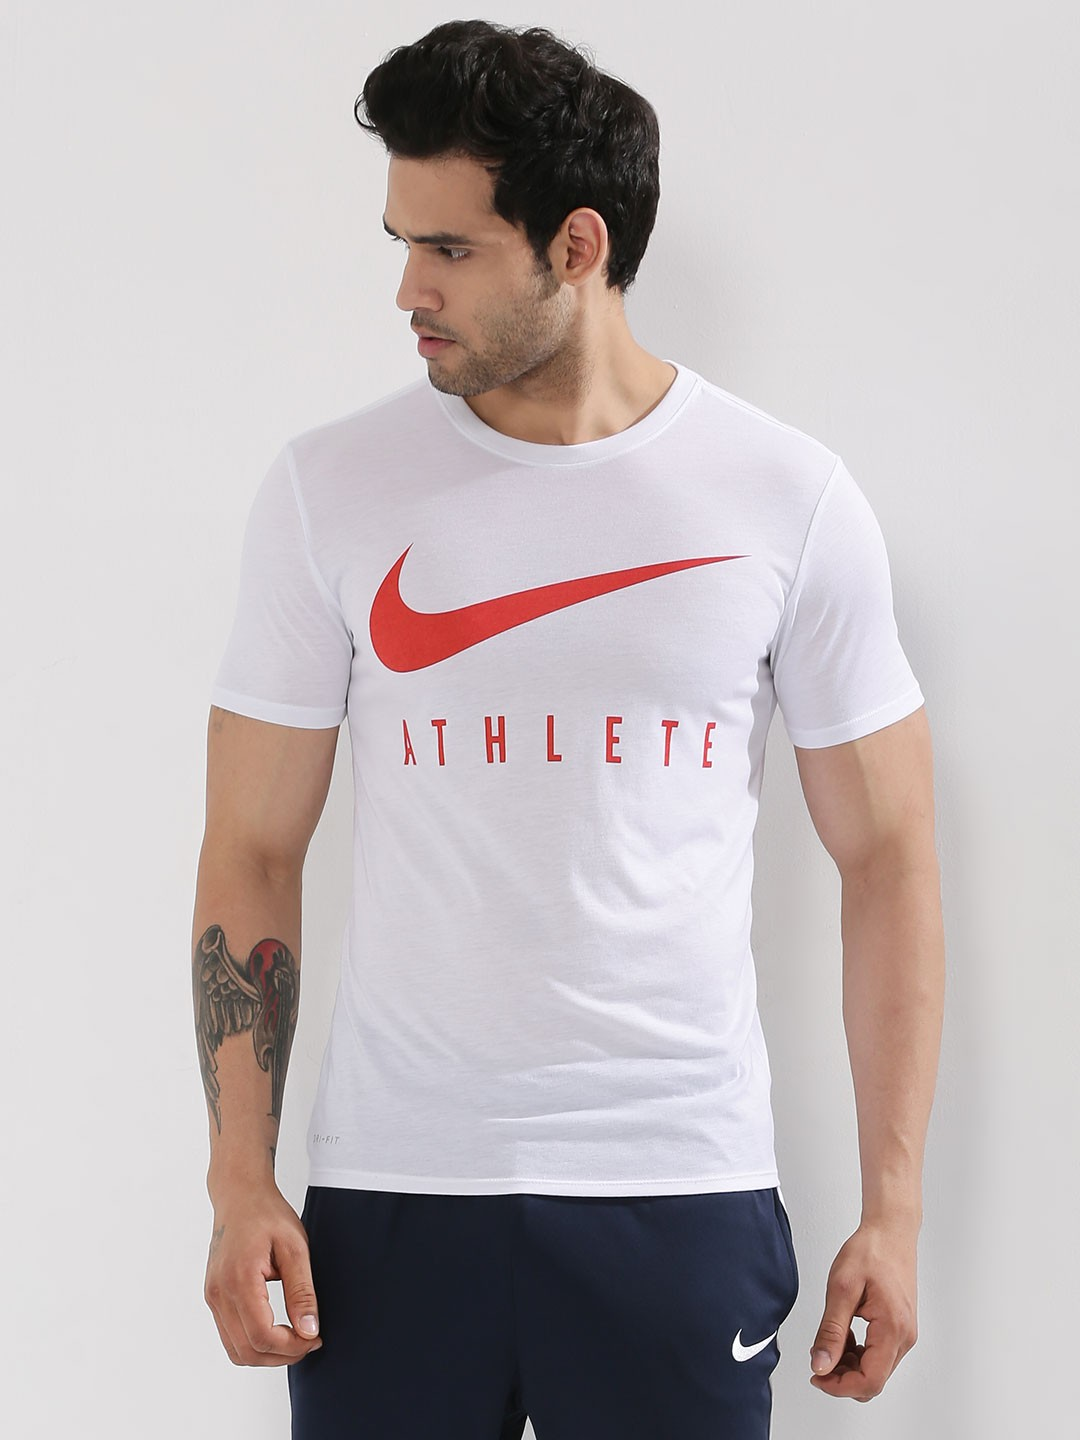 Buy nike dri fit athlete training t shirt for men men 39 s for Buy dri fit shirts